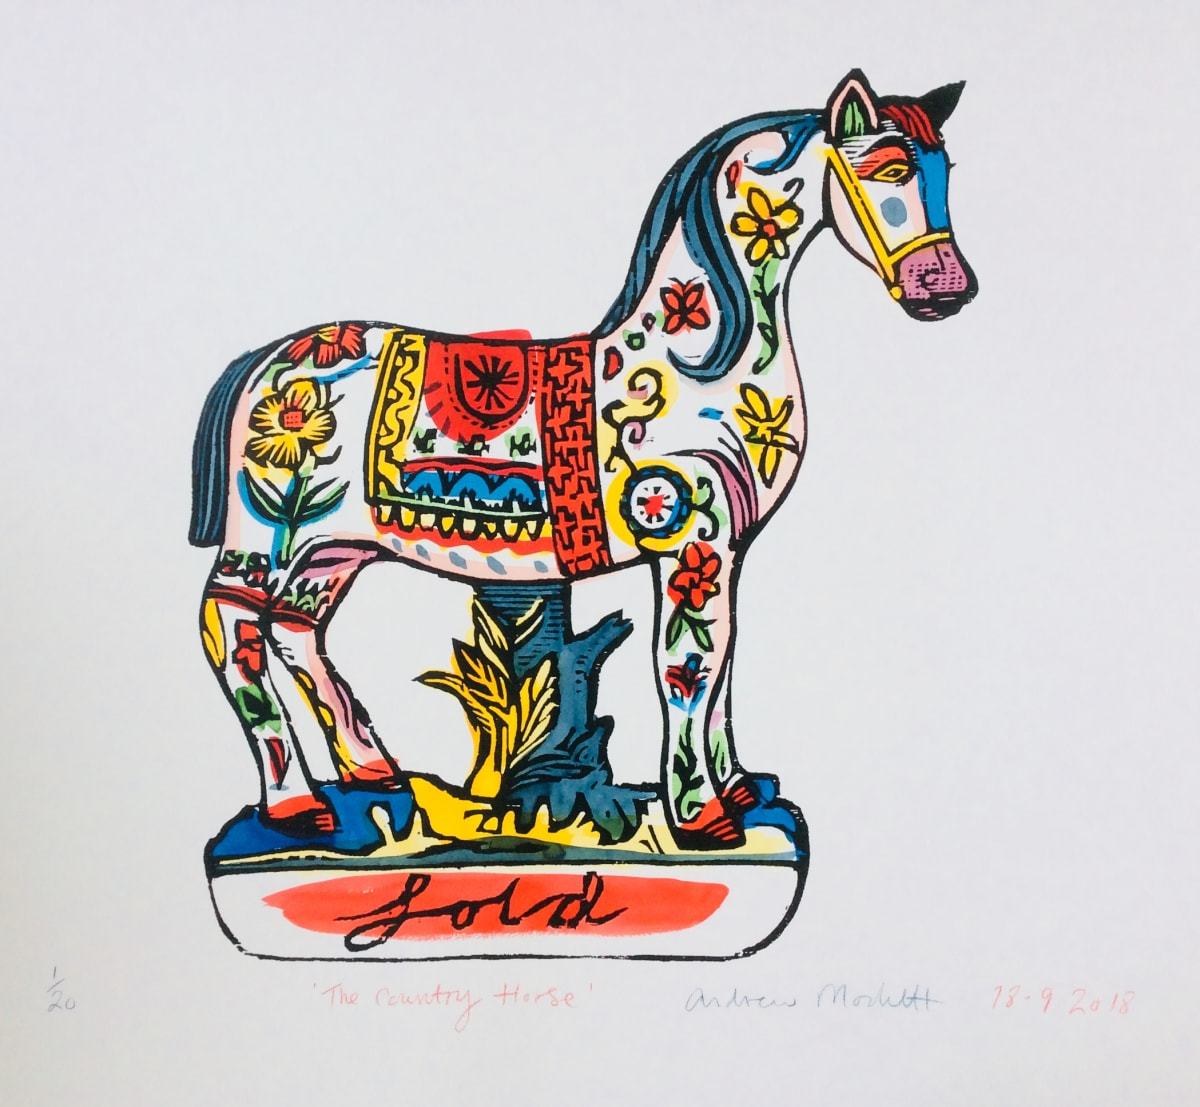 Andrew Mockett The Country Horse , 2018 screen printed woodcut, hand painted with calligraphy inks on Bockingford paper 136 x 167cm Edition of 20